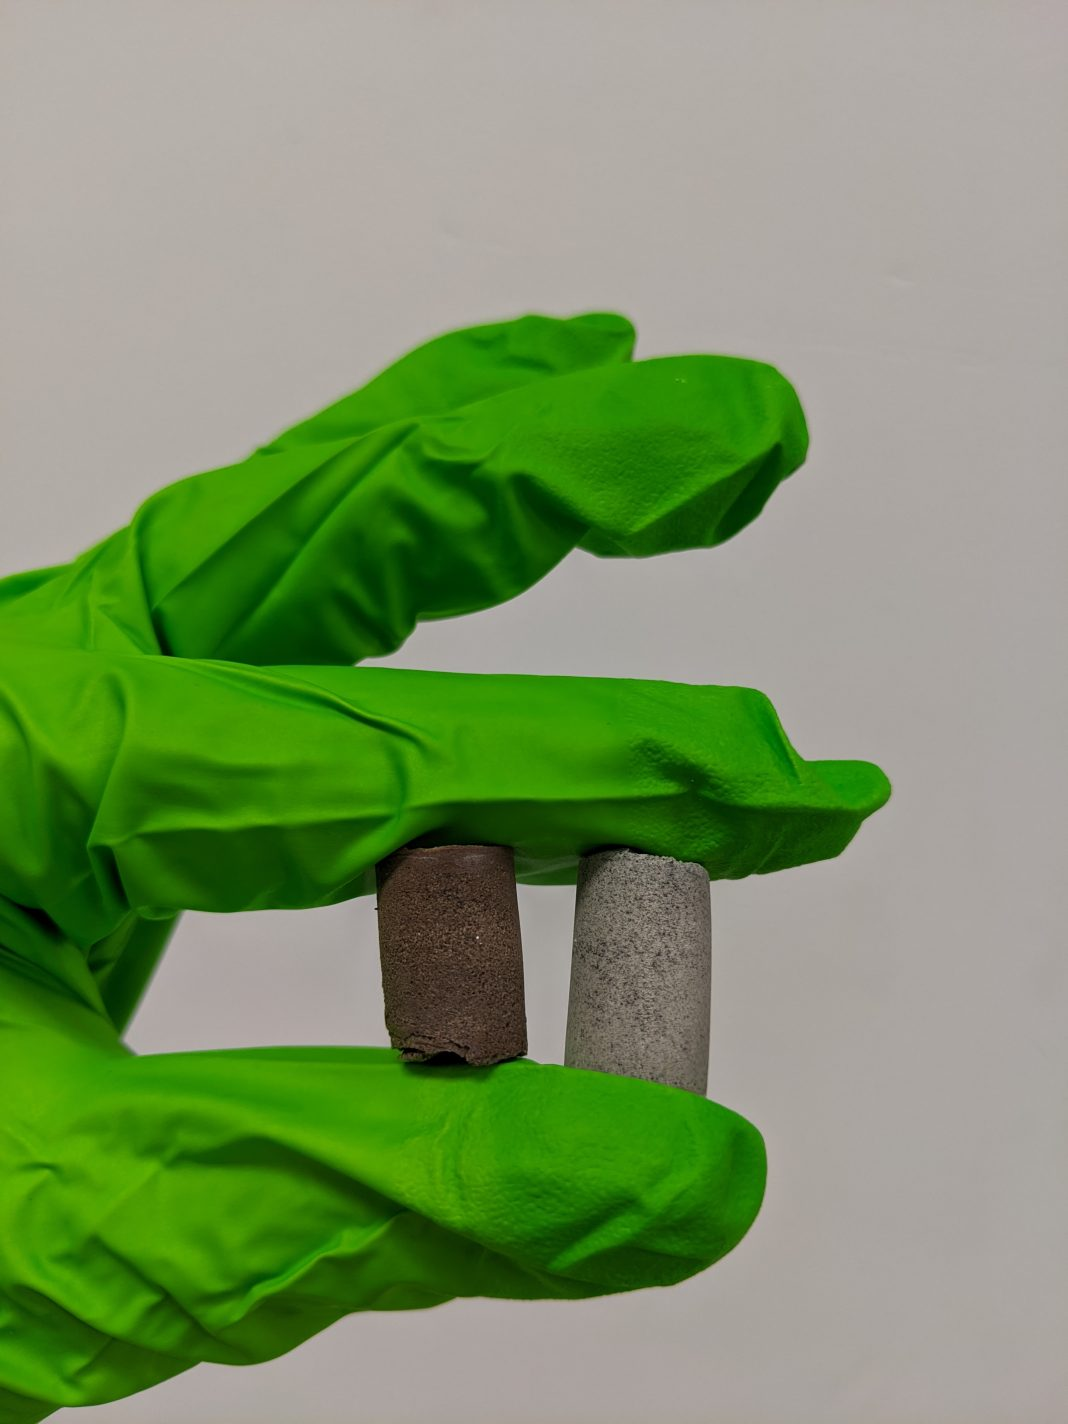 Concrete-Like Material Developed From Space Dust And Astronaut Blood